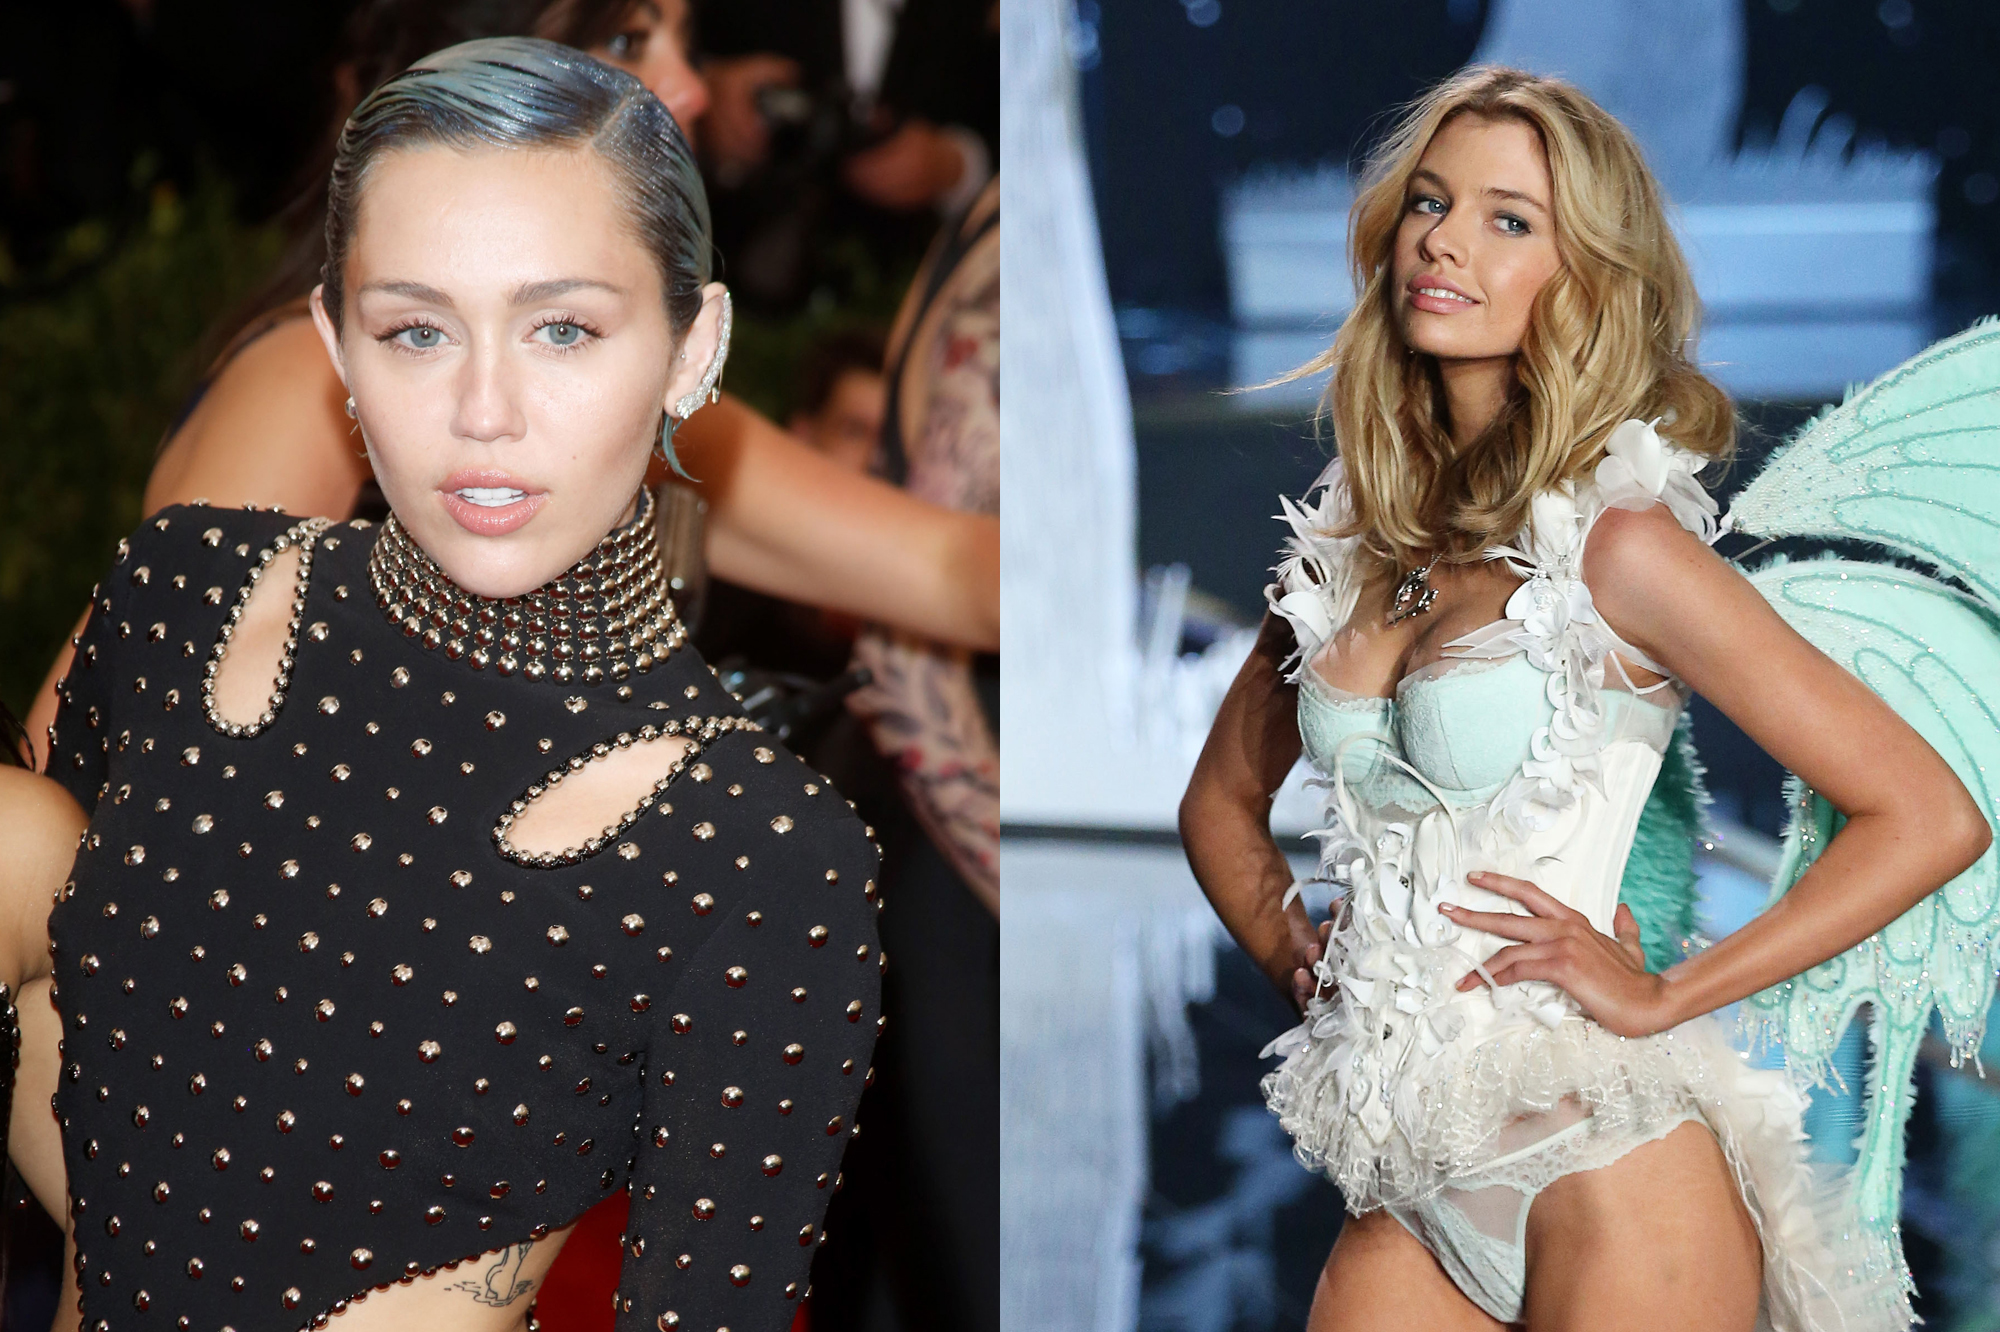 VIDEO. Miley Cyrus amoureuse d'une fille, l'embrasse ...